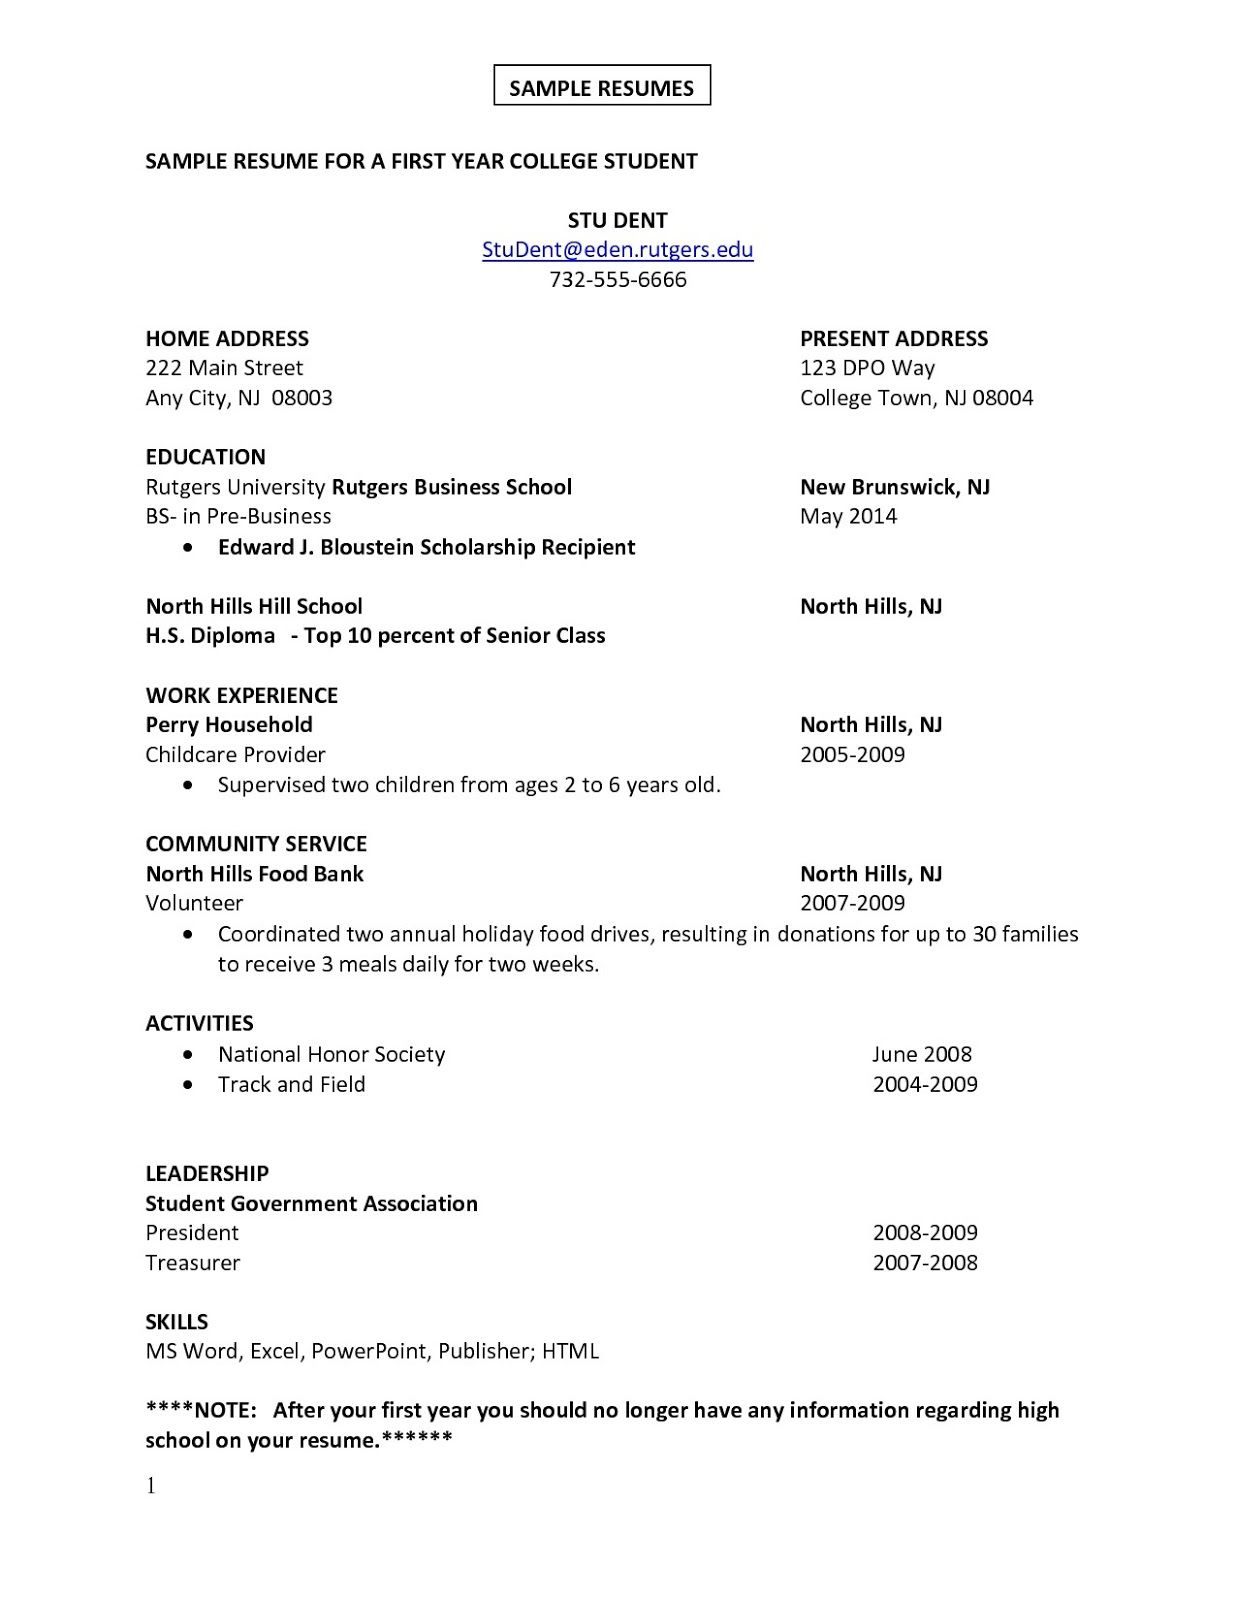 first job sample resume sample resumes sample resumes pinterest